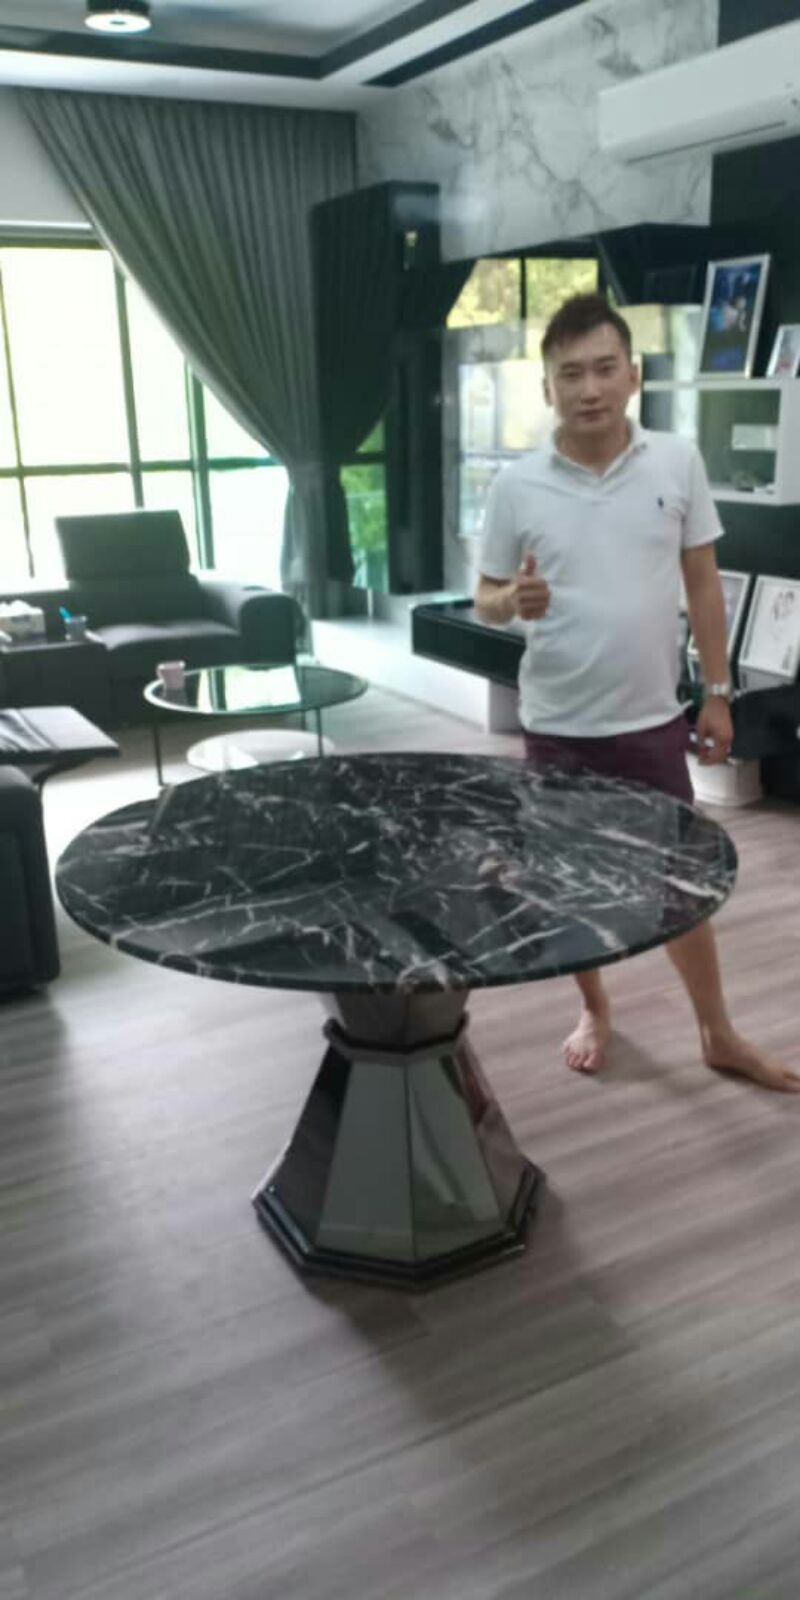 Modern Marble Dining Table From Spain - Marrone Marble